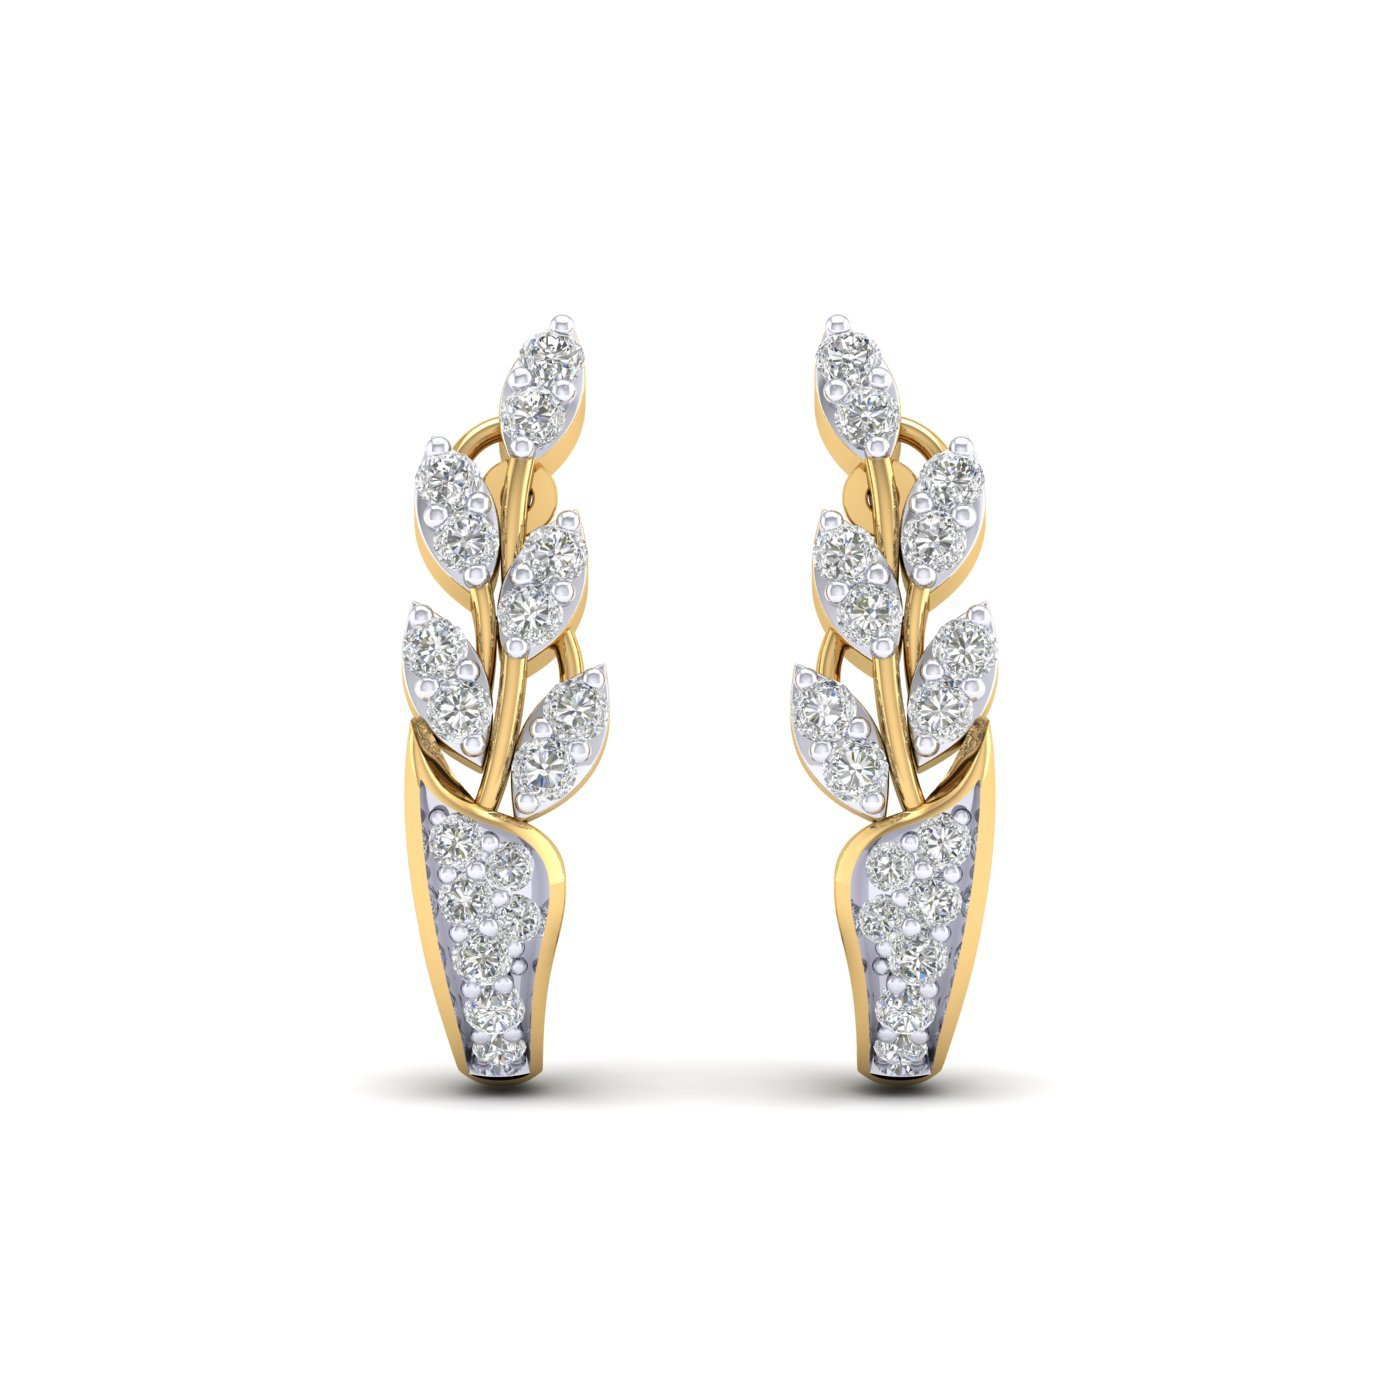 Cubic Zirconia Leaf Design Cluster Stud Earrings Summer Sale 14K Yellow Gold Plated Round Cut AAA